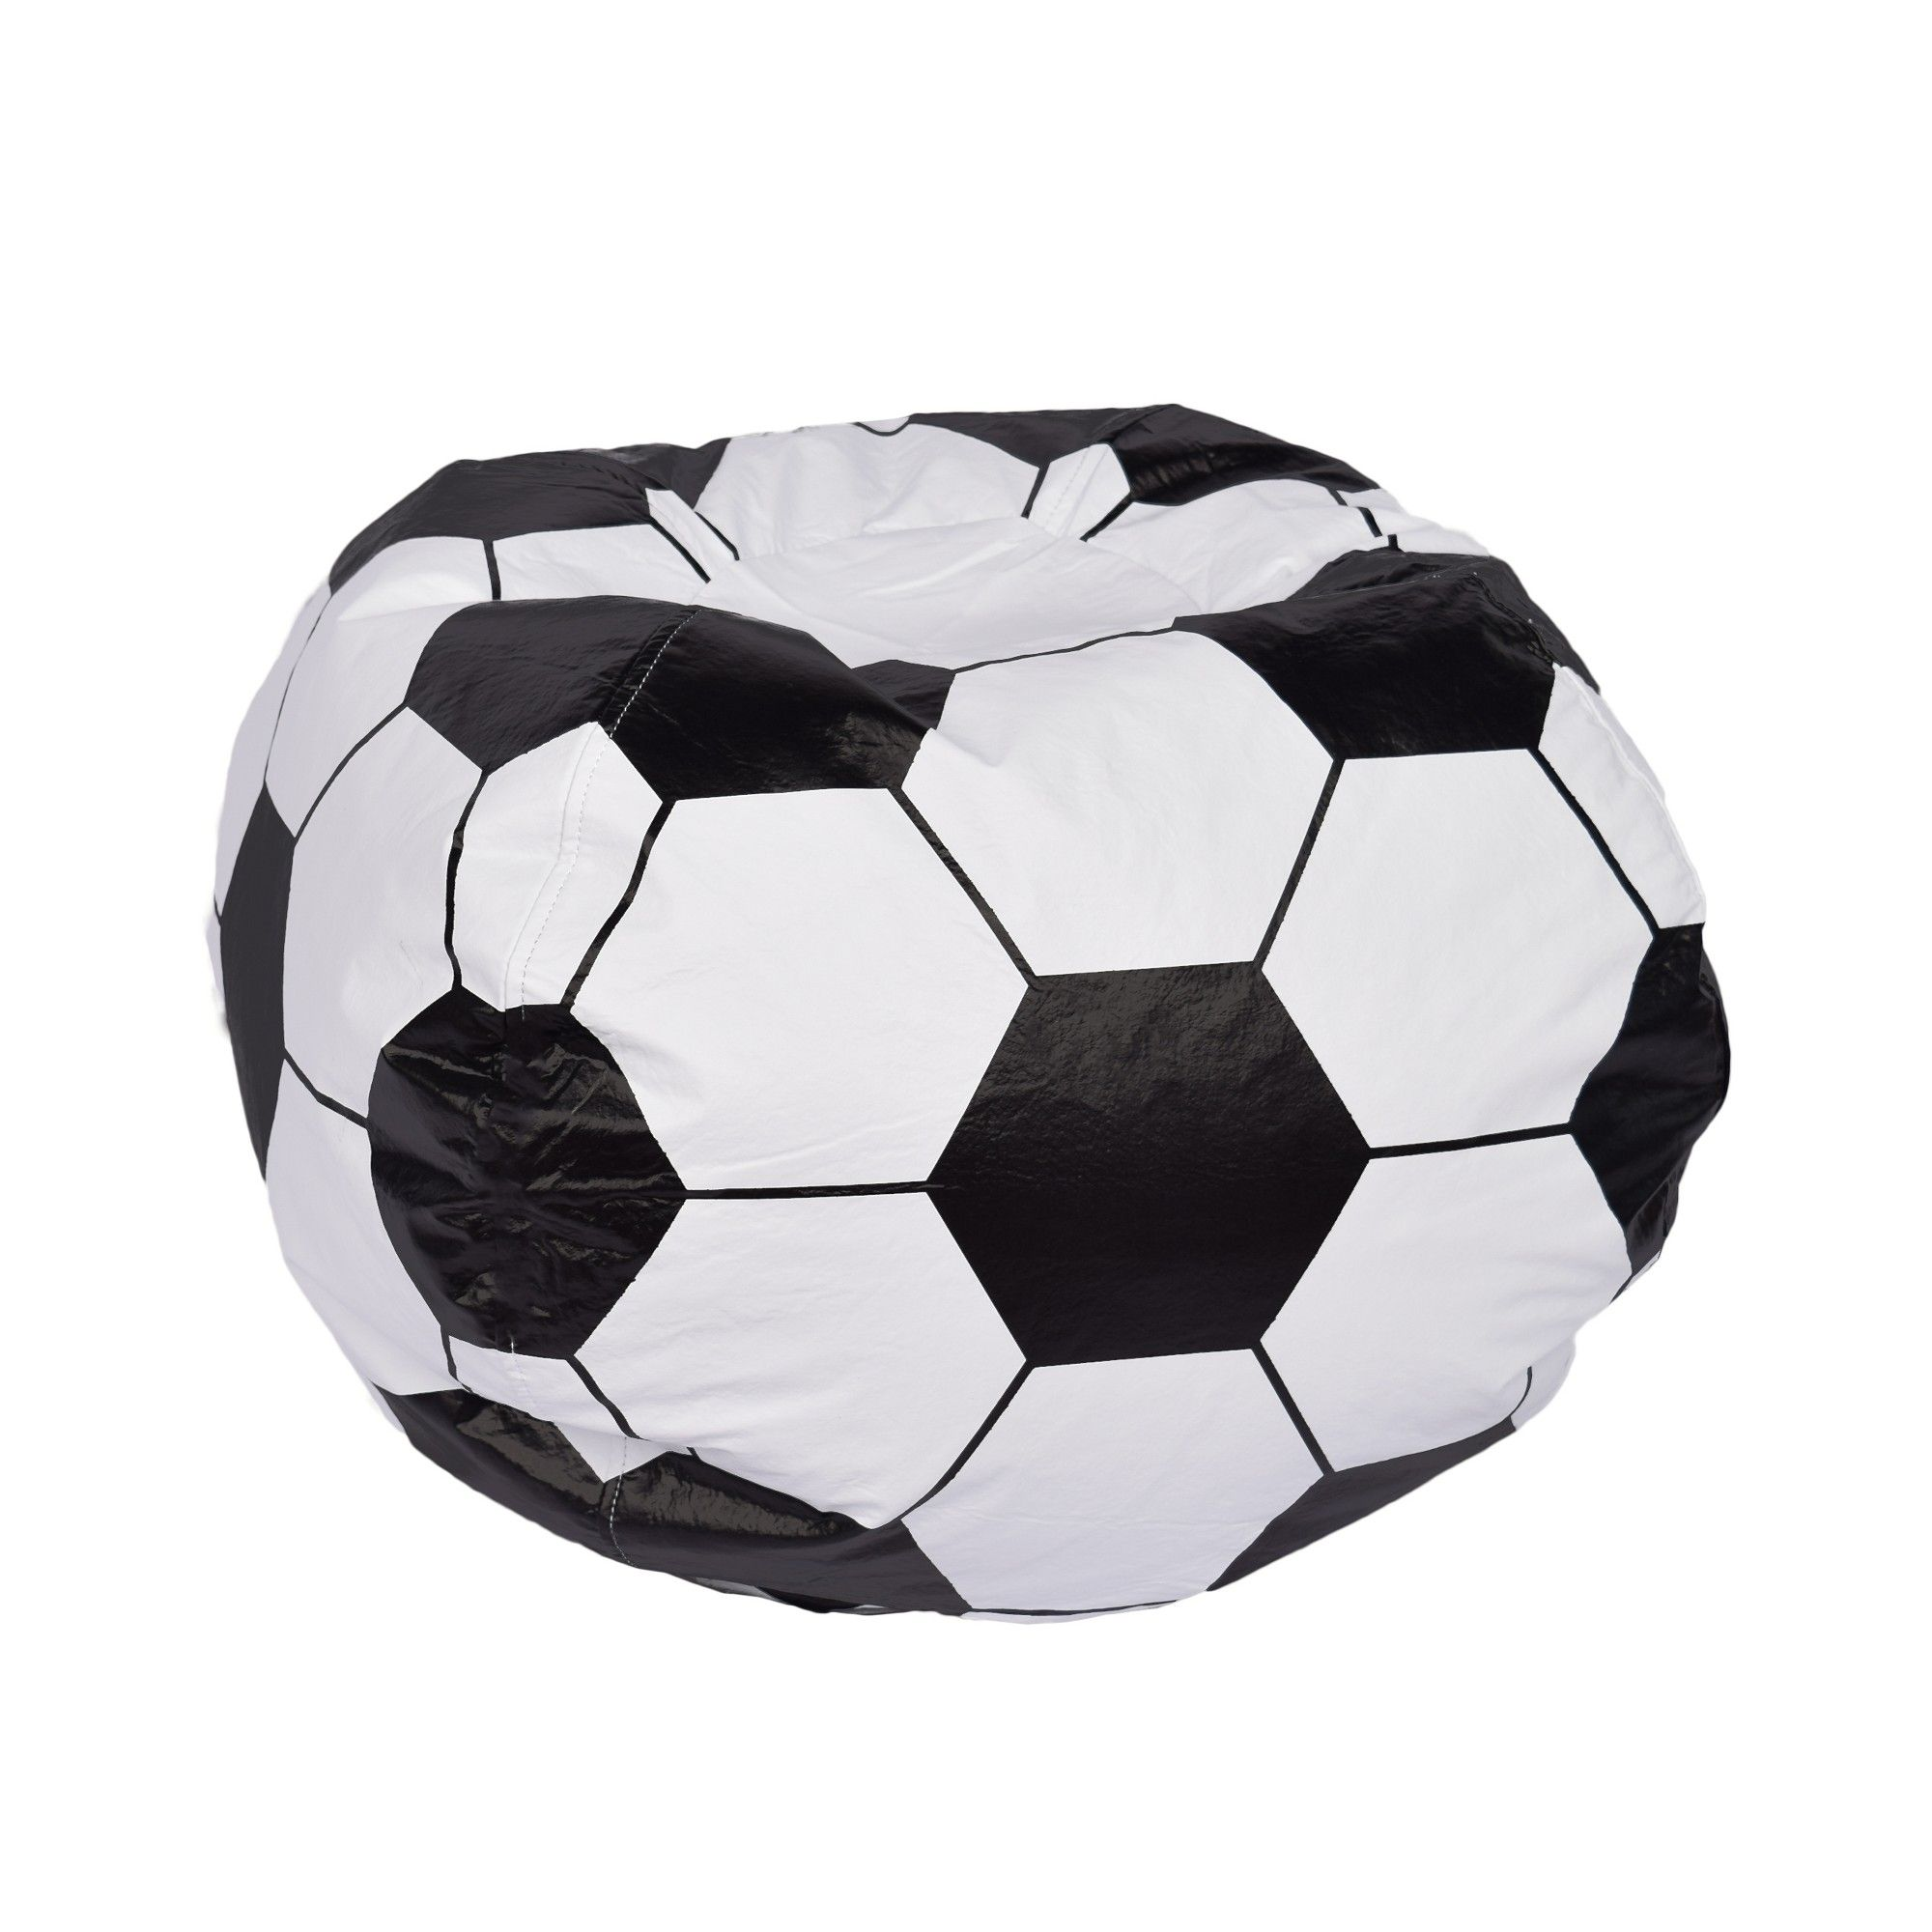 Astounding Acessentials Soccer Ball Bean Bag Chair Matte White Ace Ocoug Best Dining Table And Chair Ideas Images Ocougorg